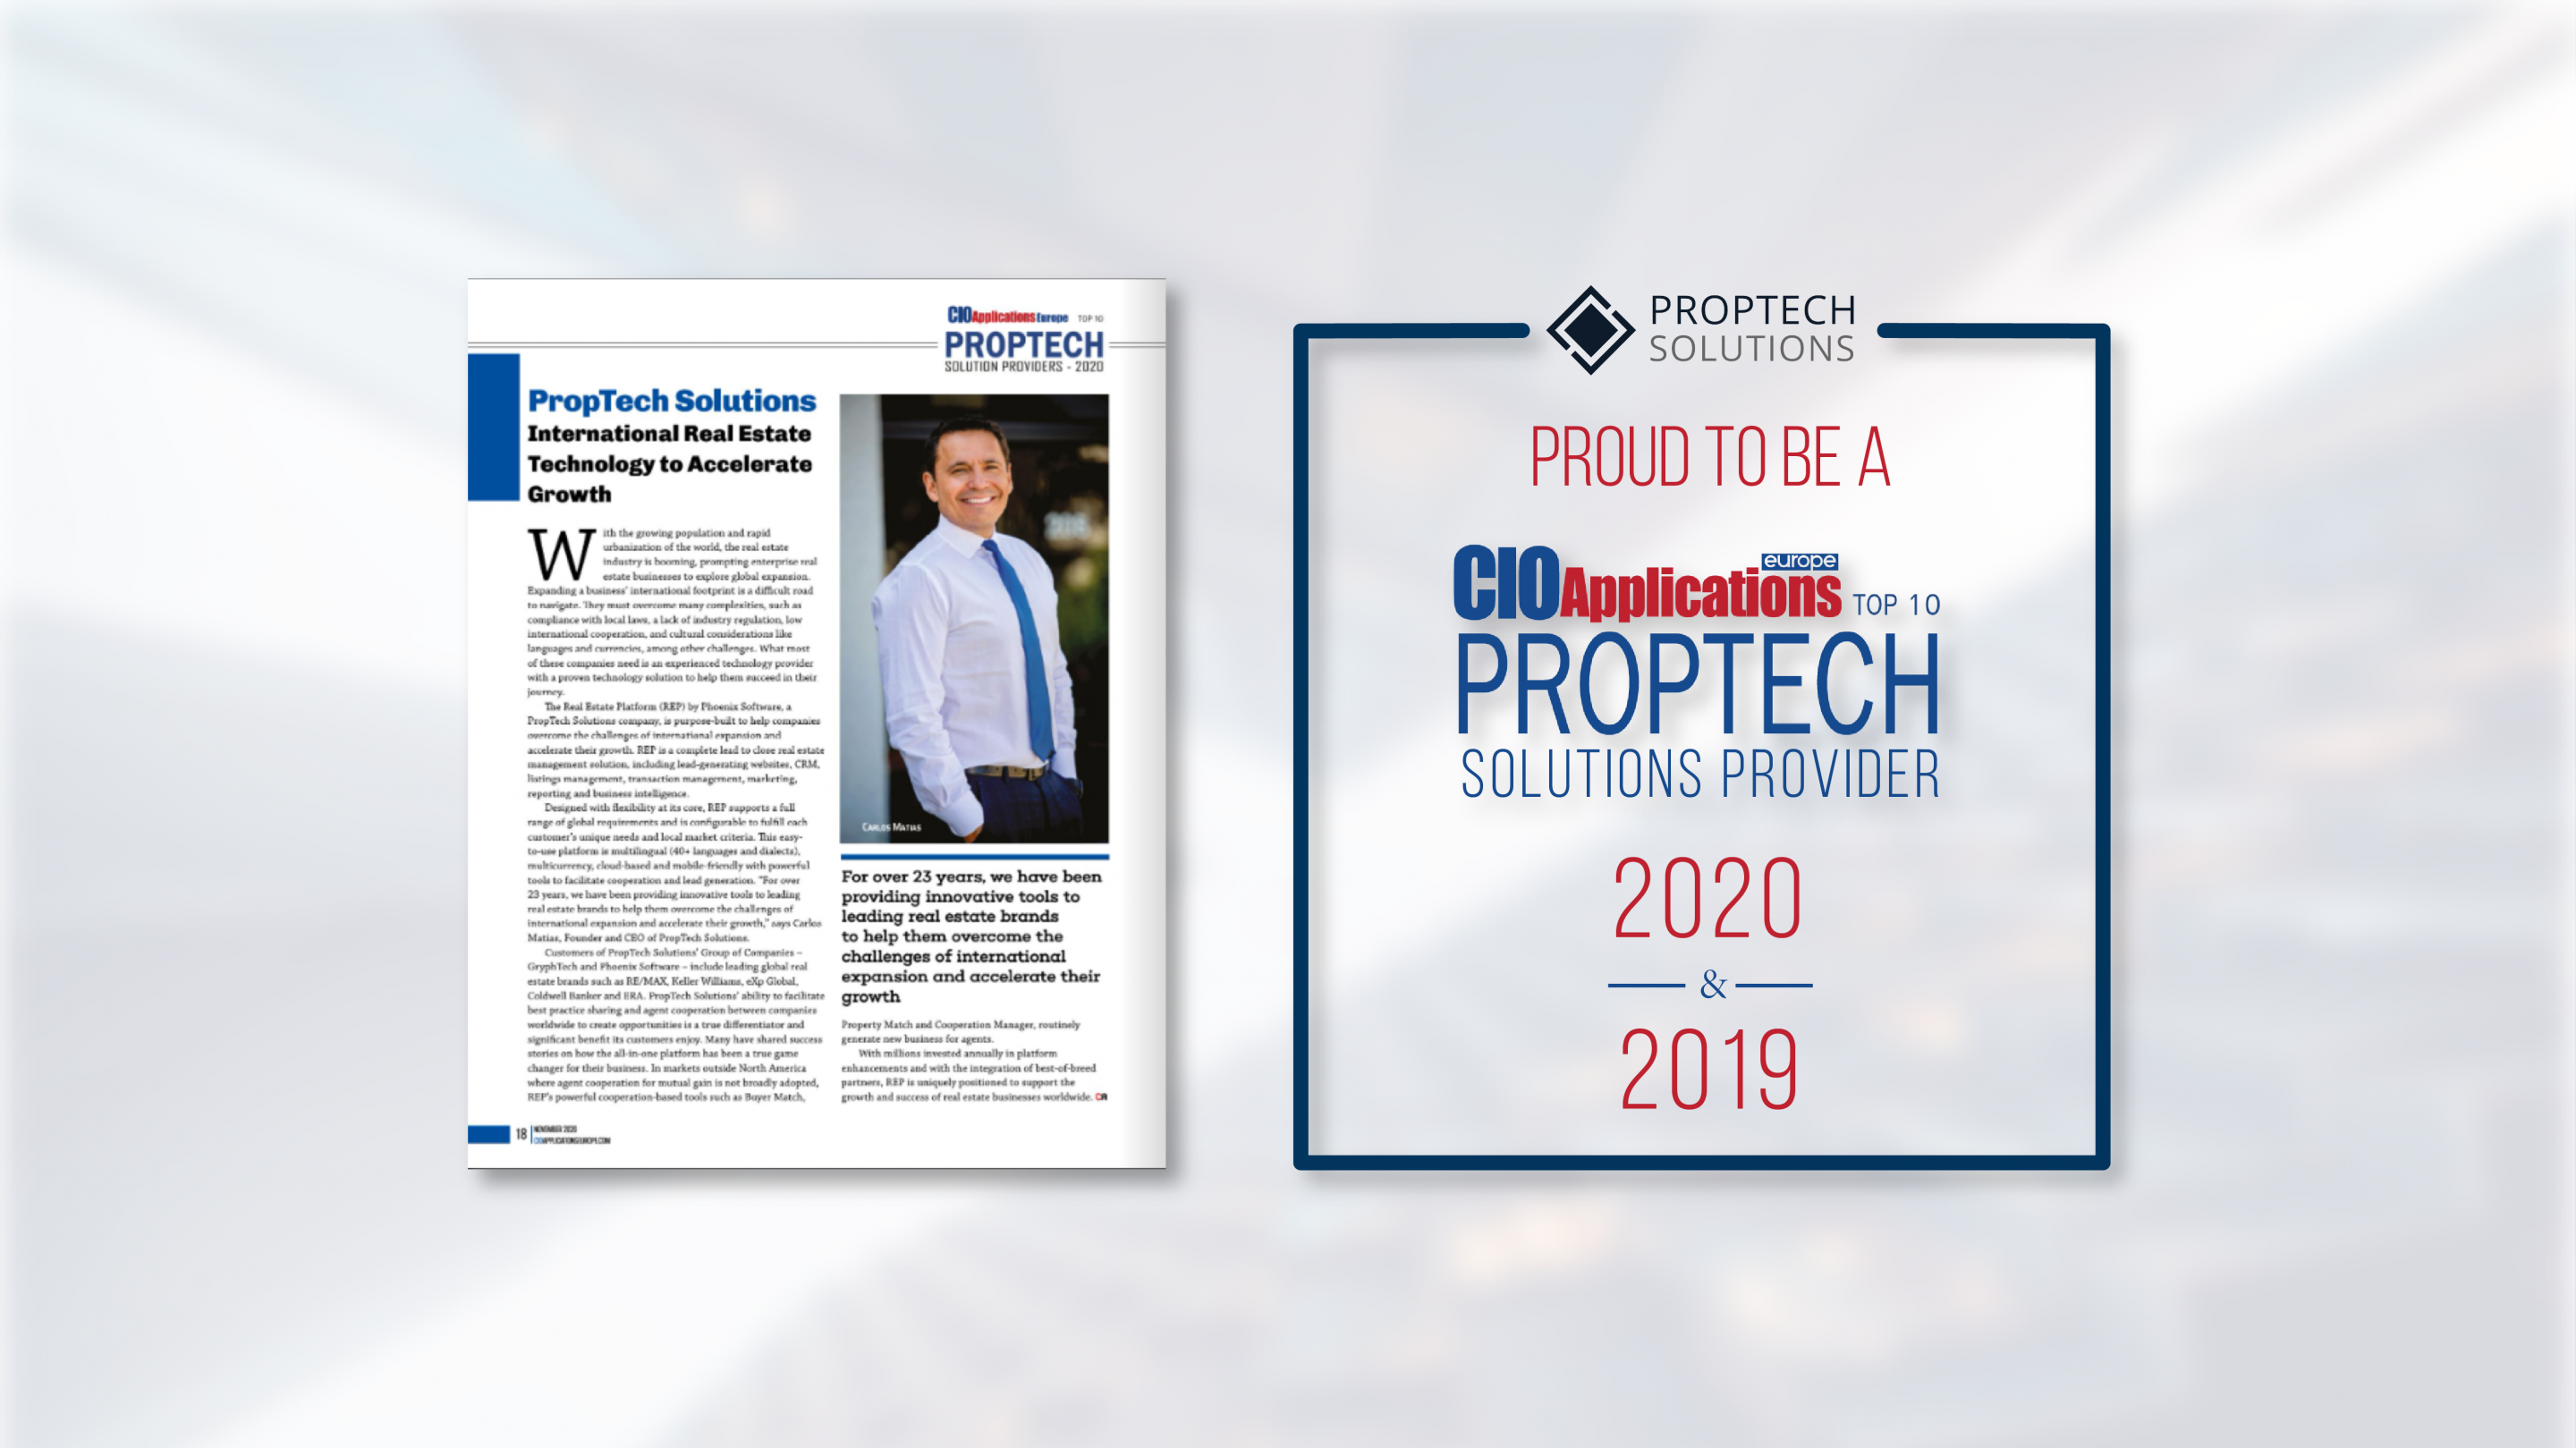 PropTech Part of CIO Applications Europe's Top 10 PropTech Solutions Provider